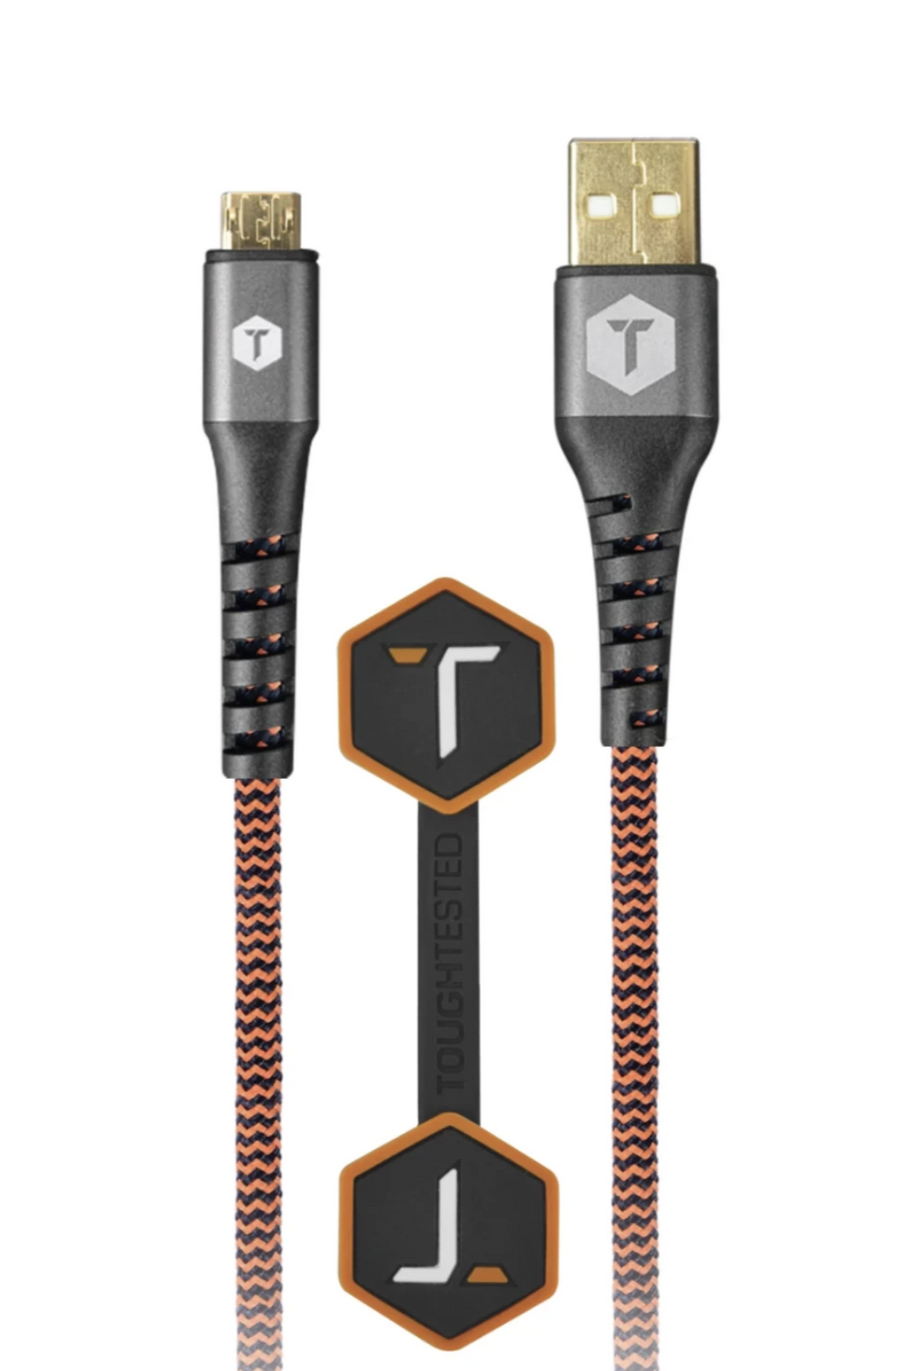 Braided 6 Ft. USB Cable with Micro-USB Connector